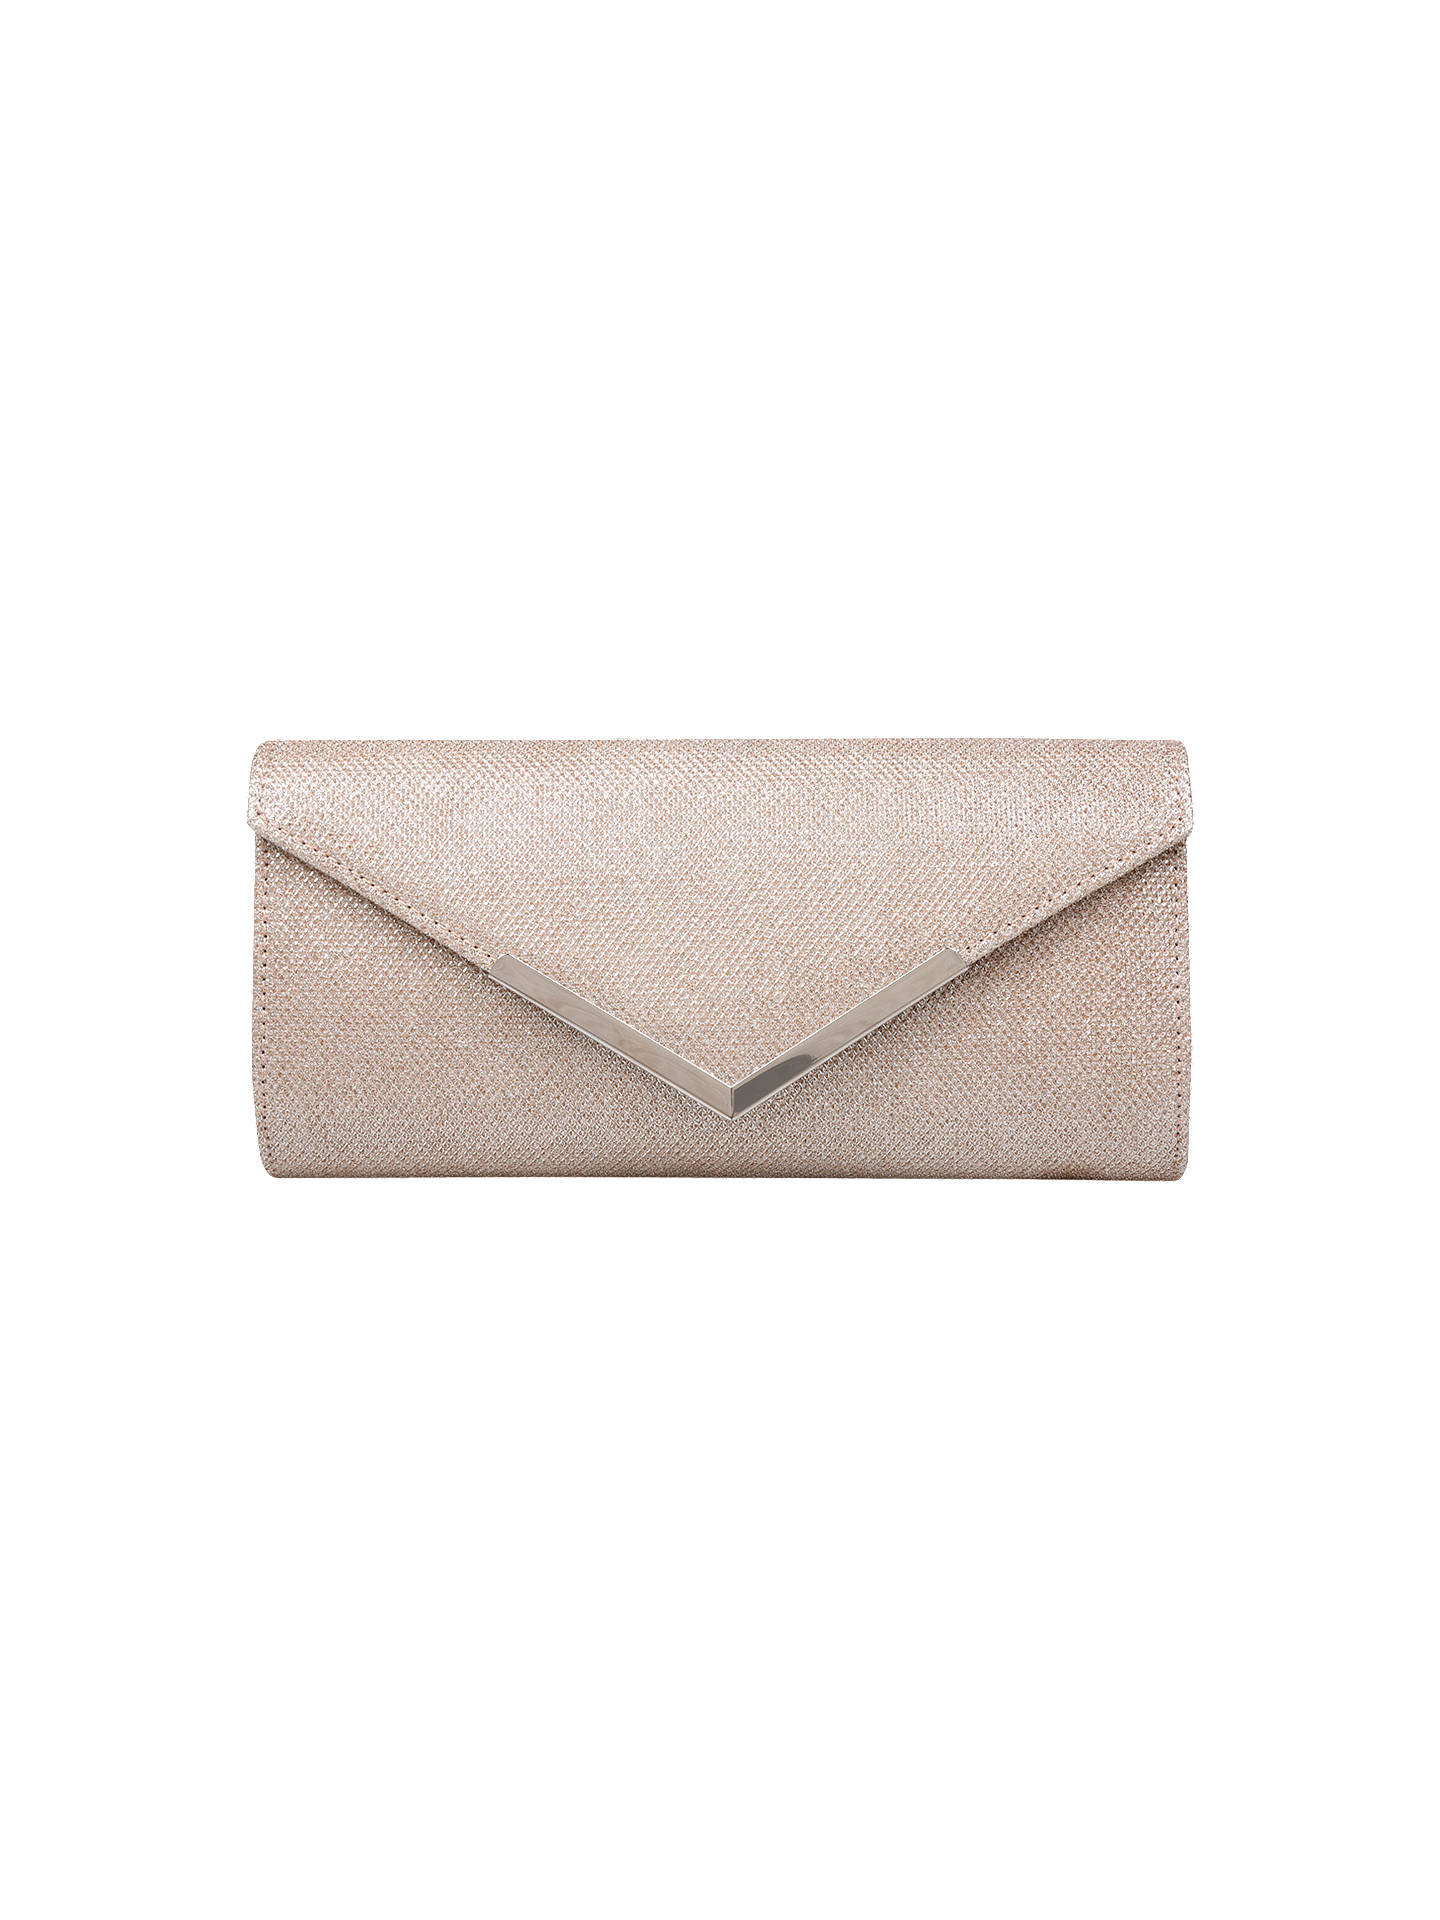 BuyCarvela Daphne 2 Matchbag Clutch Bag, Gold Online at johnlewis.com